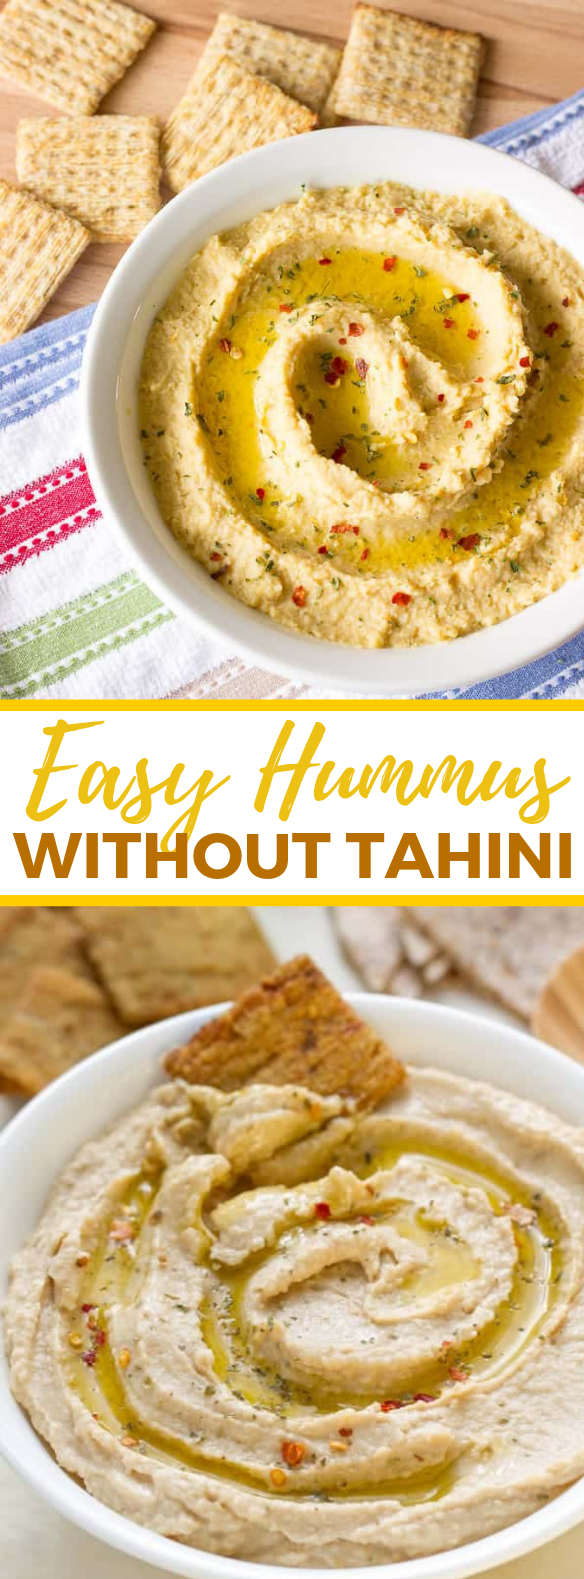 SIMPLE & EASY HUMMUS WITHOUT TAHINI #appetizers #dips